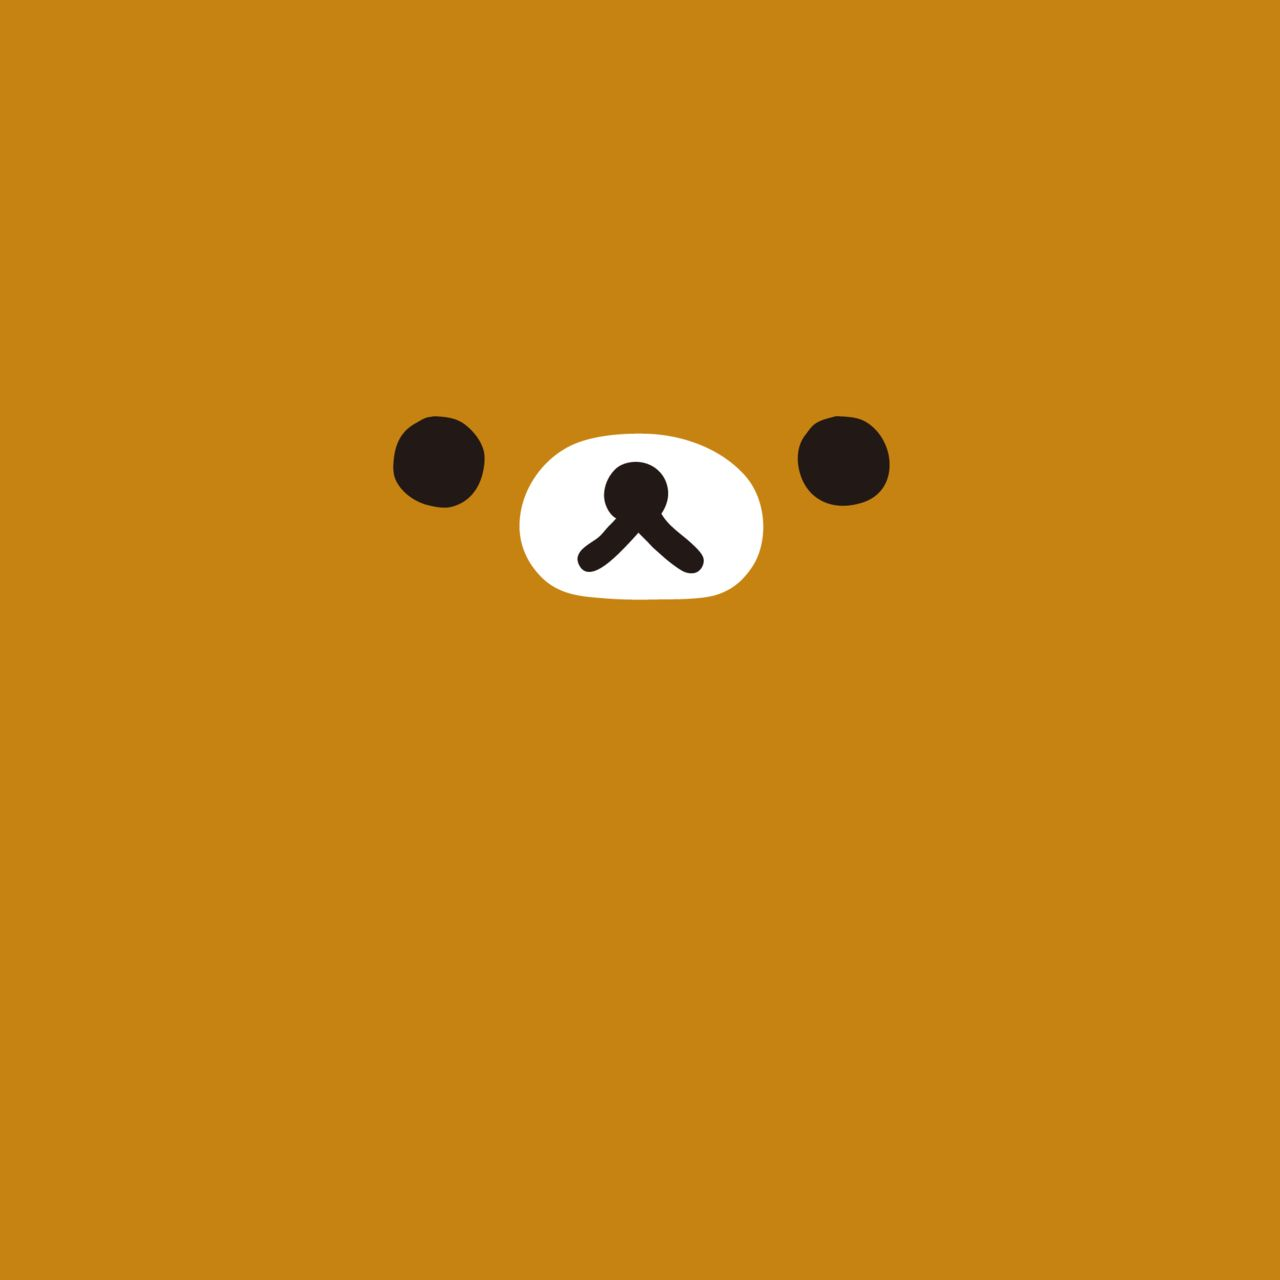 Rilakkuma ipad air wallpaper ipad wallpapers pinterest ipad rilakkuma ipad air wallpaper tumblr backgroundstumblr voltagebd Image collections